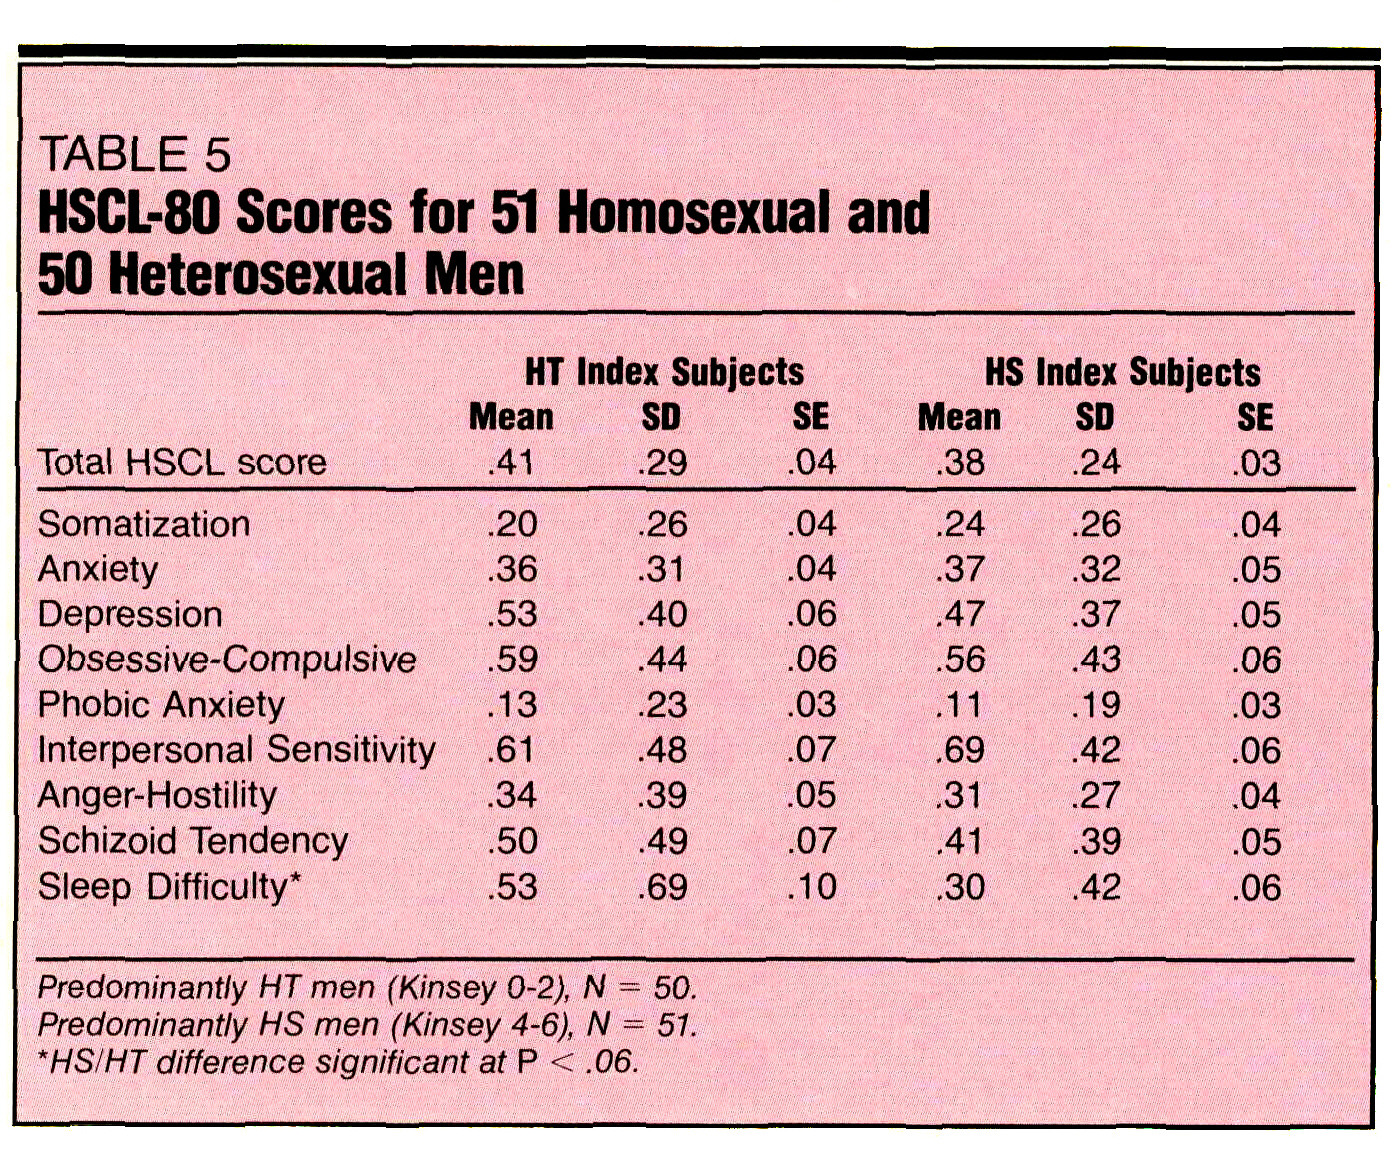 TABLE 5HSCL-80 Scores for 51 Homosexual and 50 Heterosexual Men